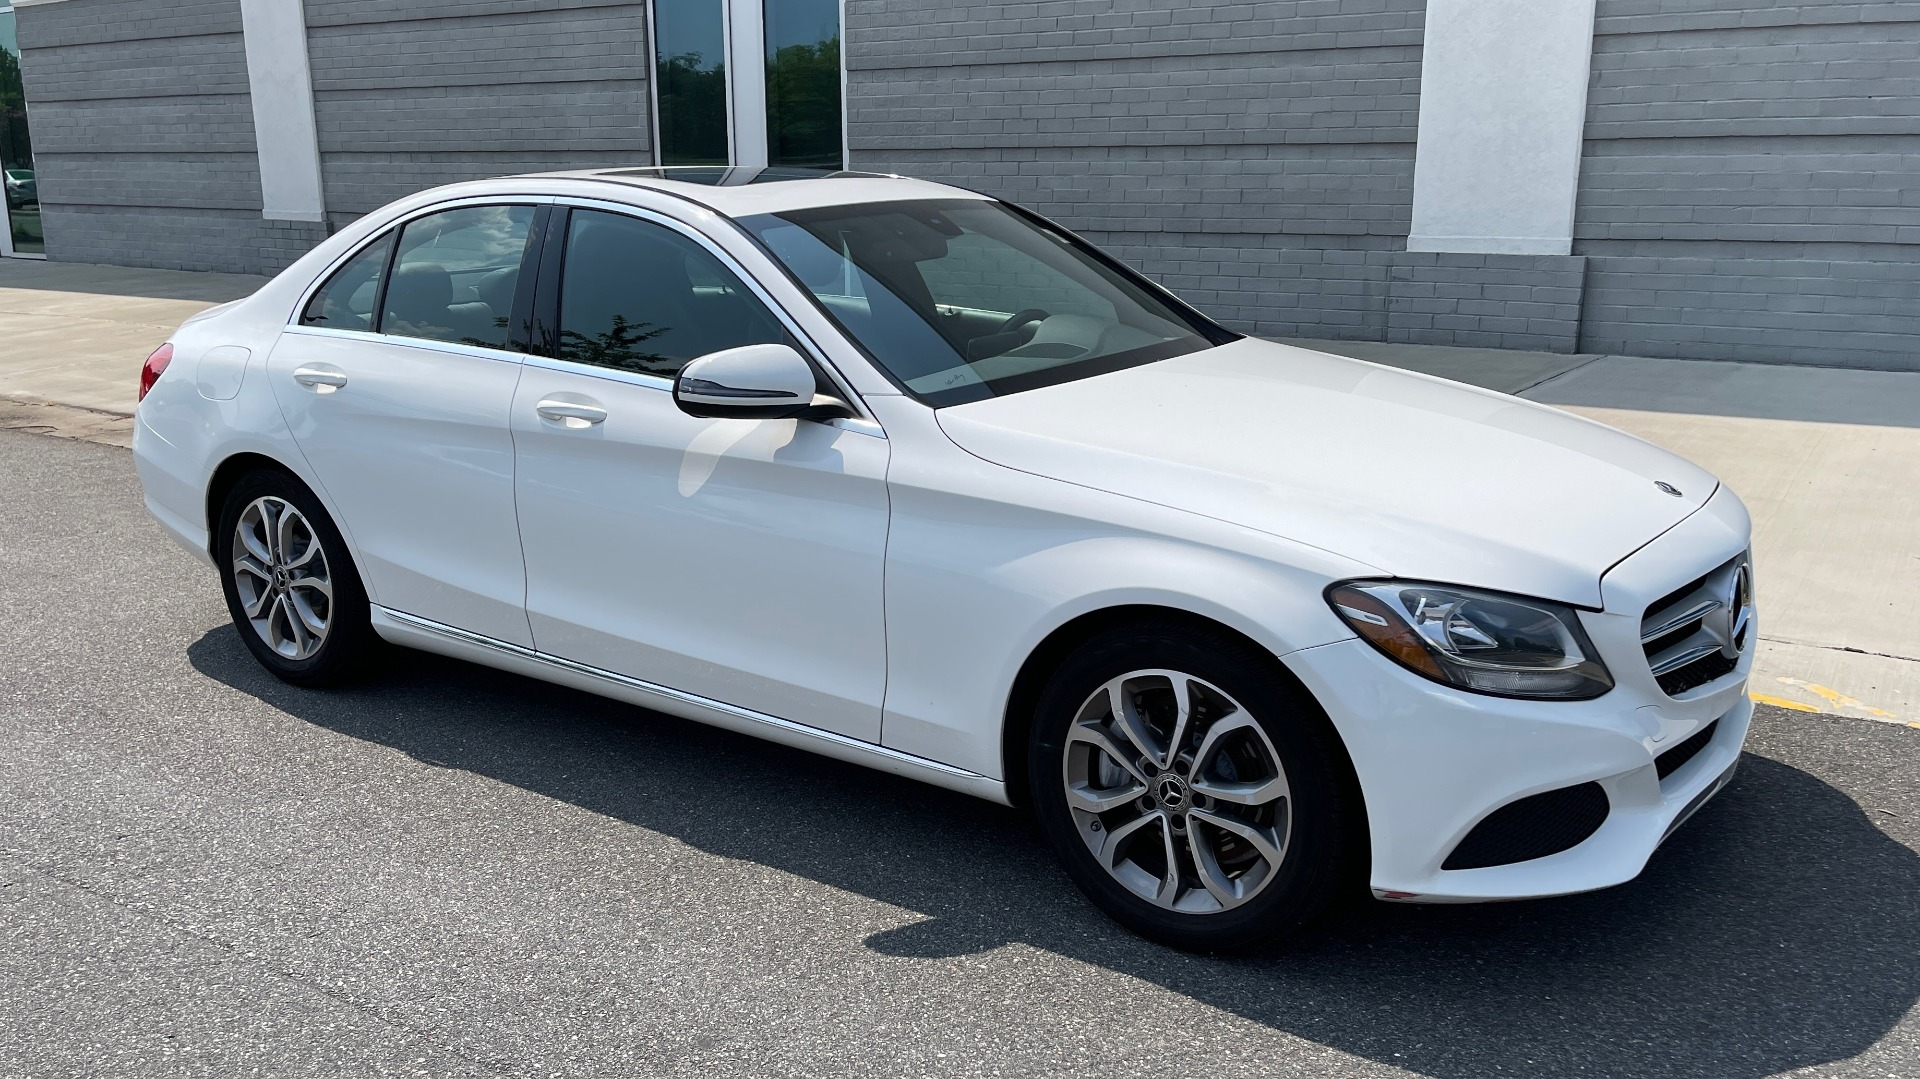 Used 2018 Mercedes-Benz C-CLASS C 300 / 2.0L / RWD / SUNROOF / APPLE~ANDROID / REARVIEW for sale $29,995 at Formula Imports in Charlotte NC 28227 6